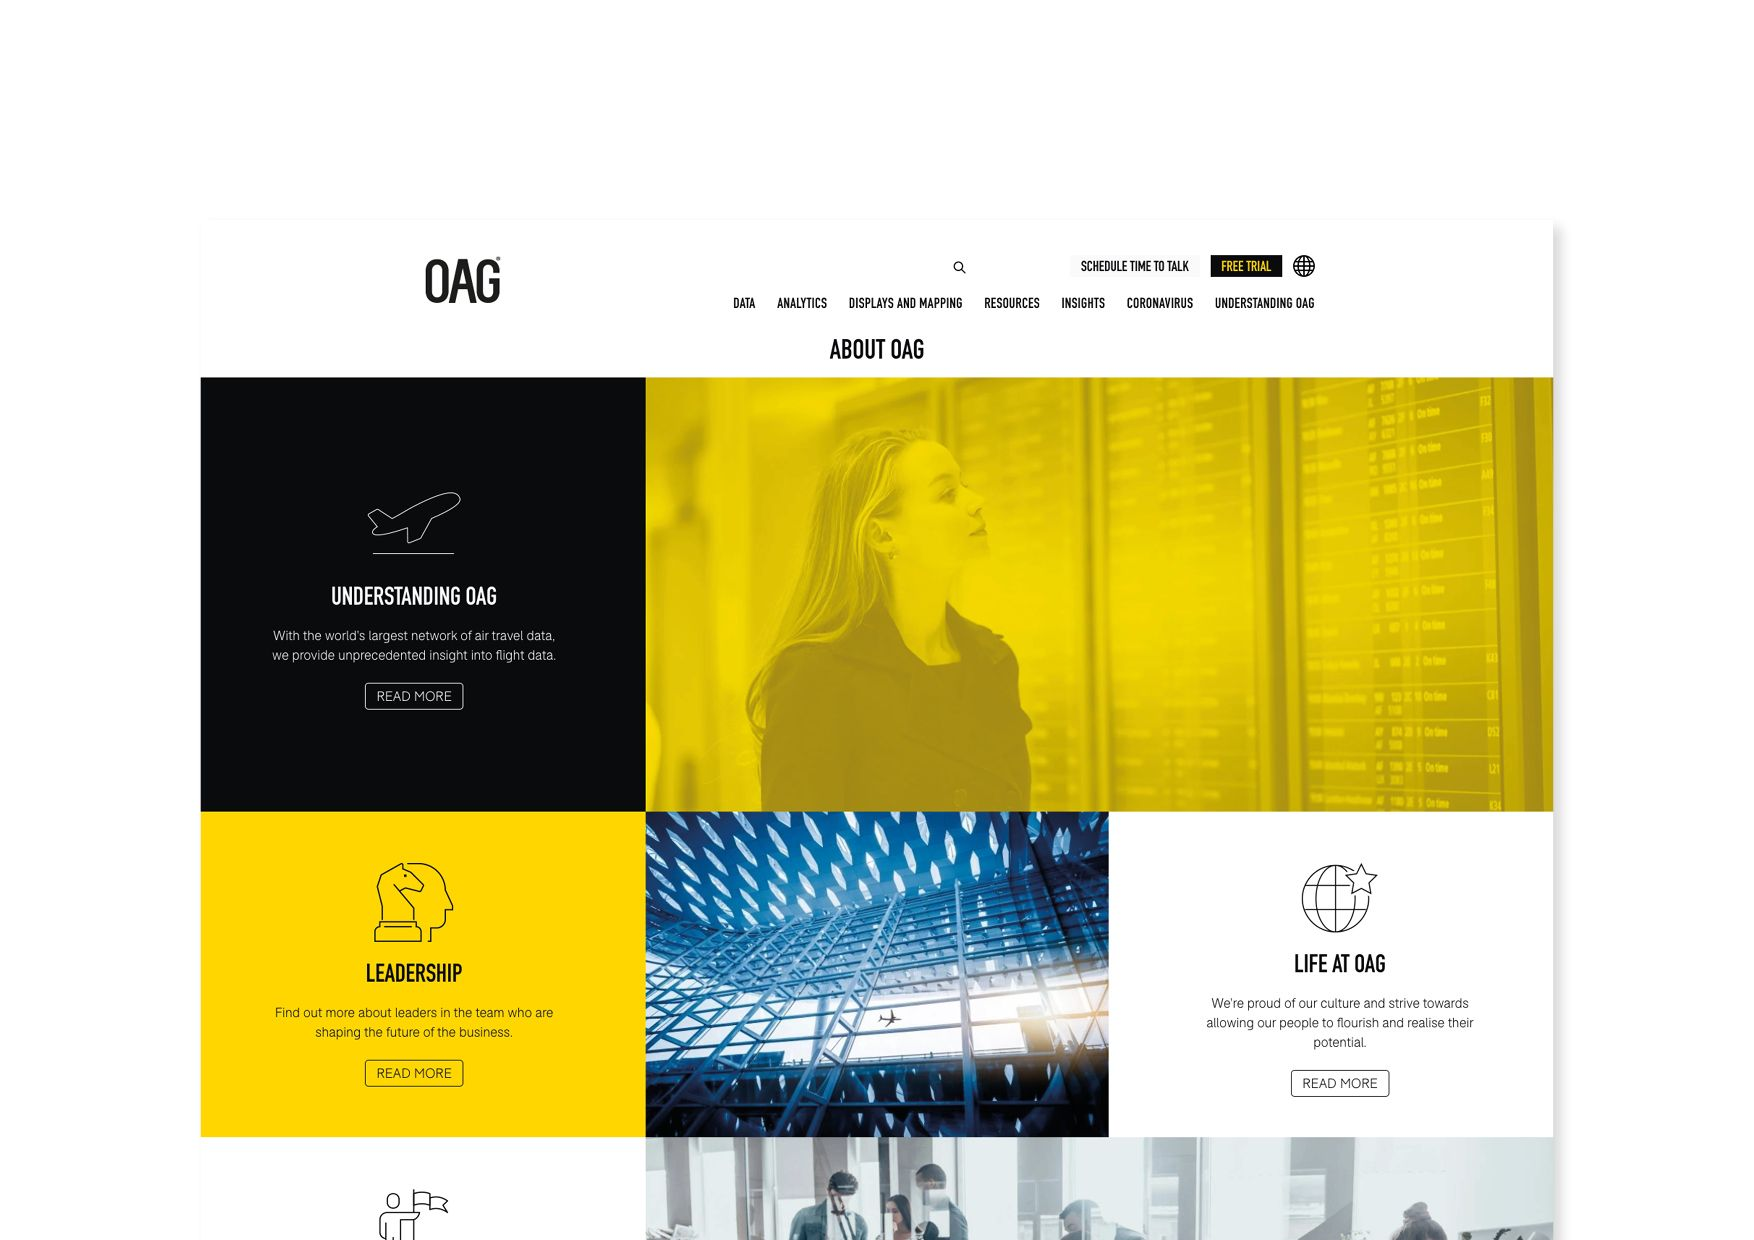 OAG-web-print-digital-ebooks-equinet-media34